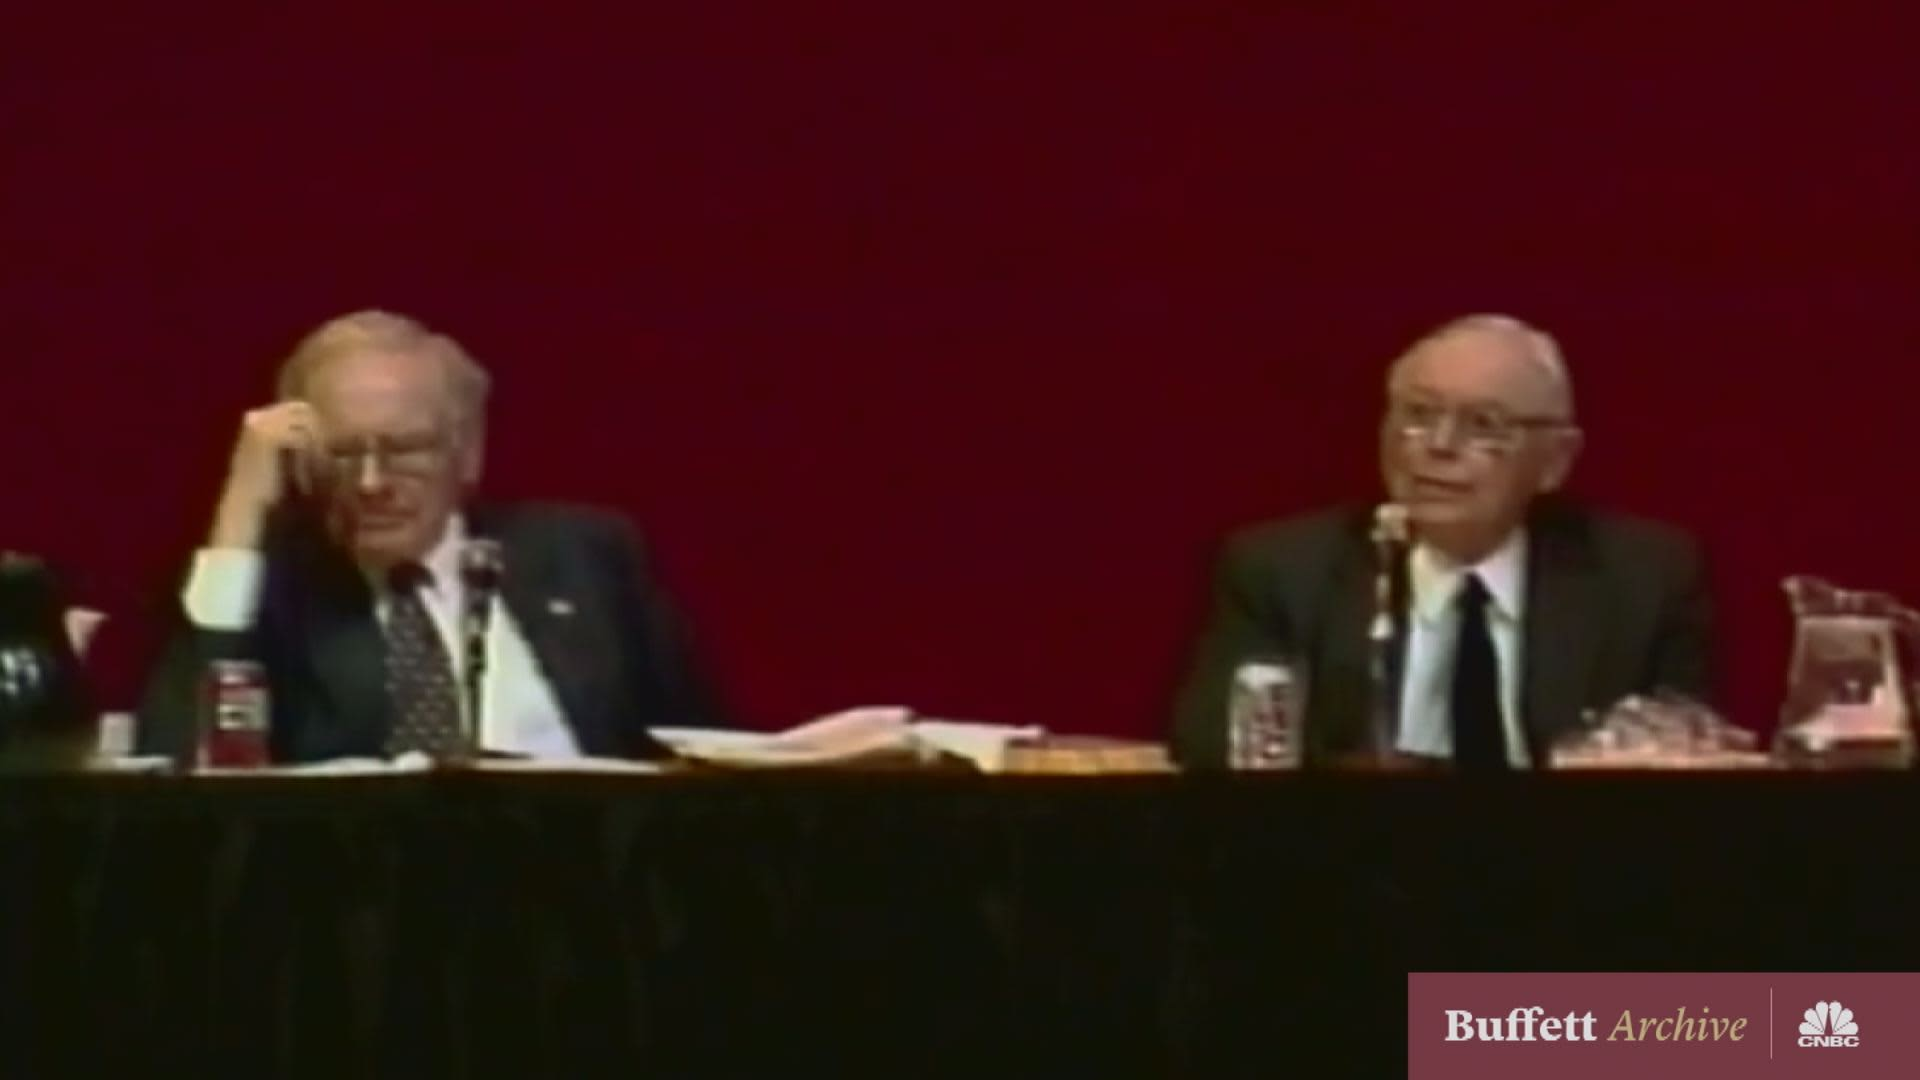 Buffett on the qualities needed to be a great investor